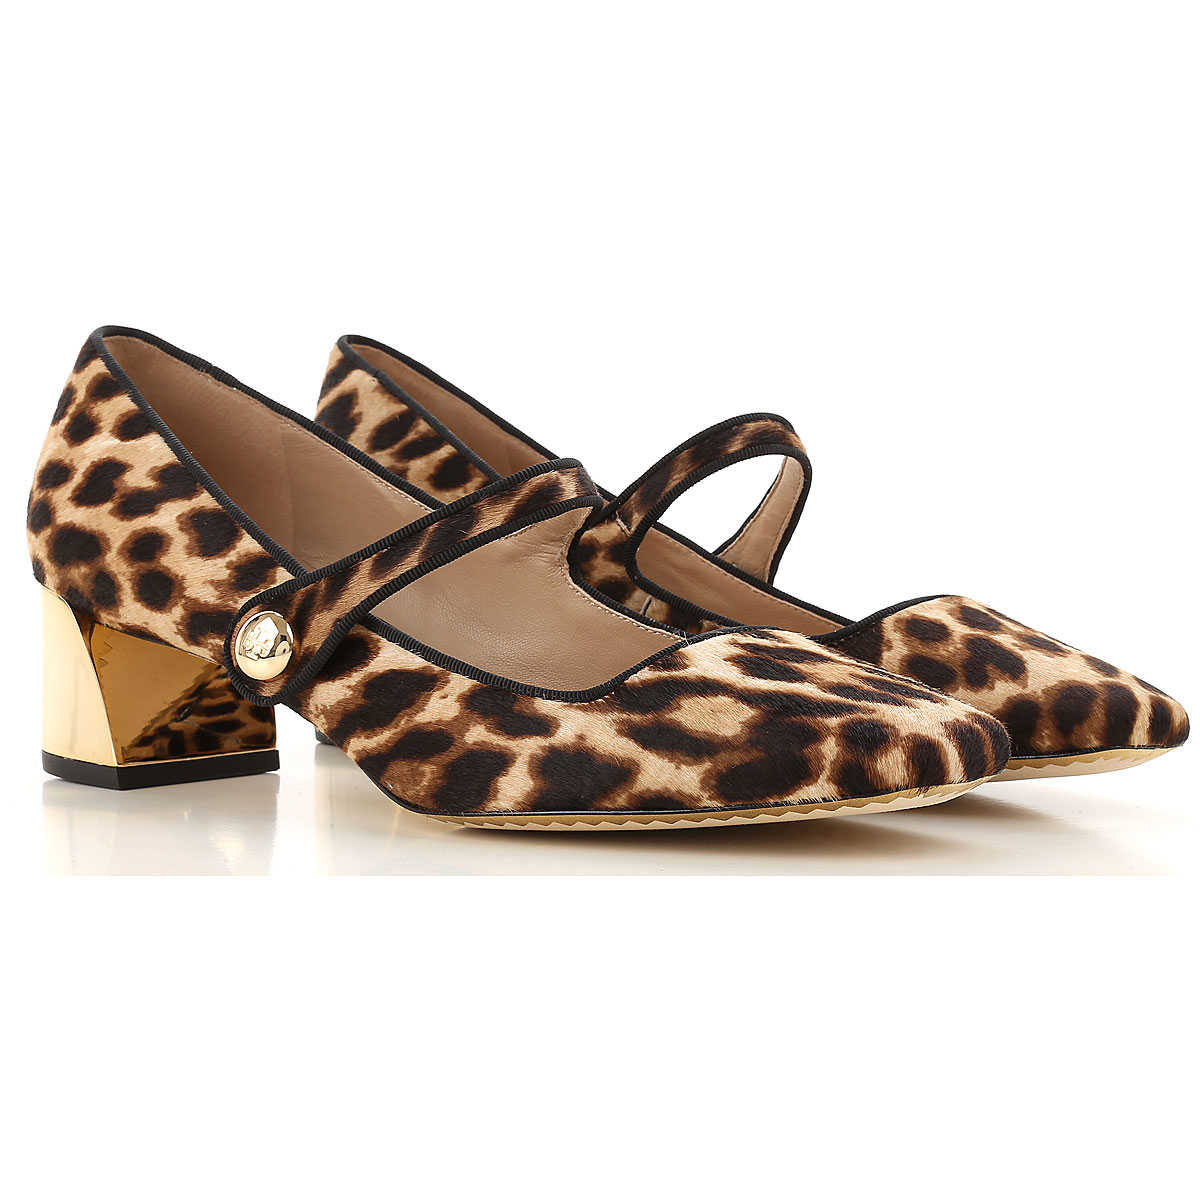 Tory Burch Ballet Flats Ballerina Shoes for Women On Sale in Outlet